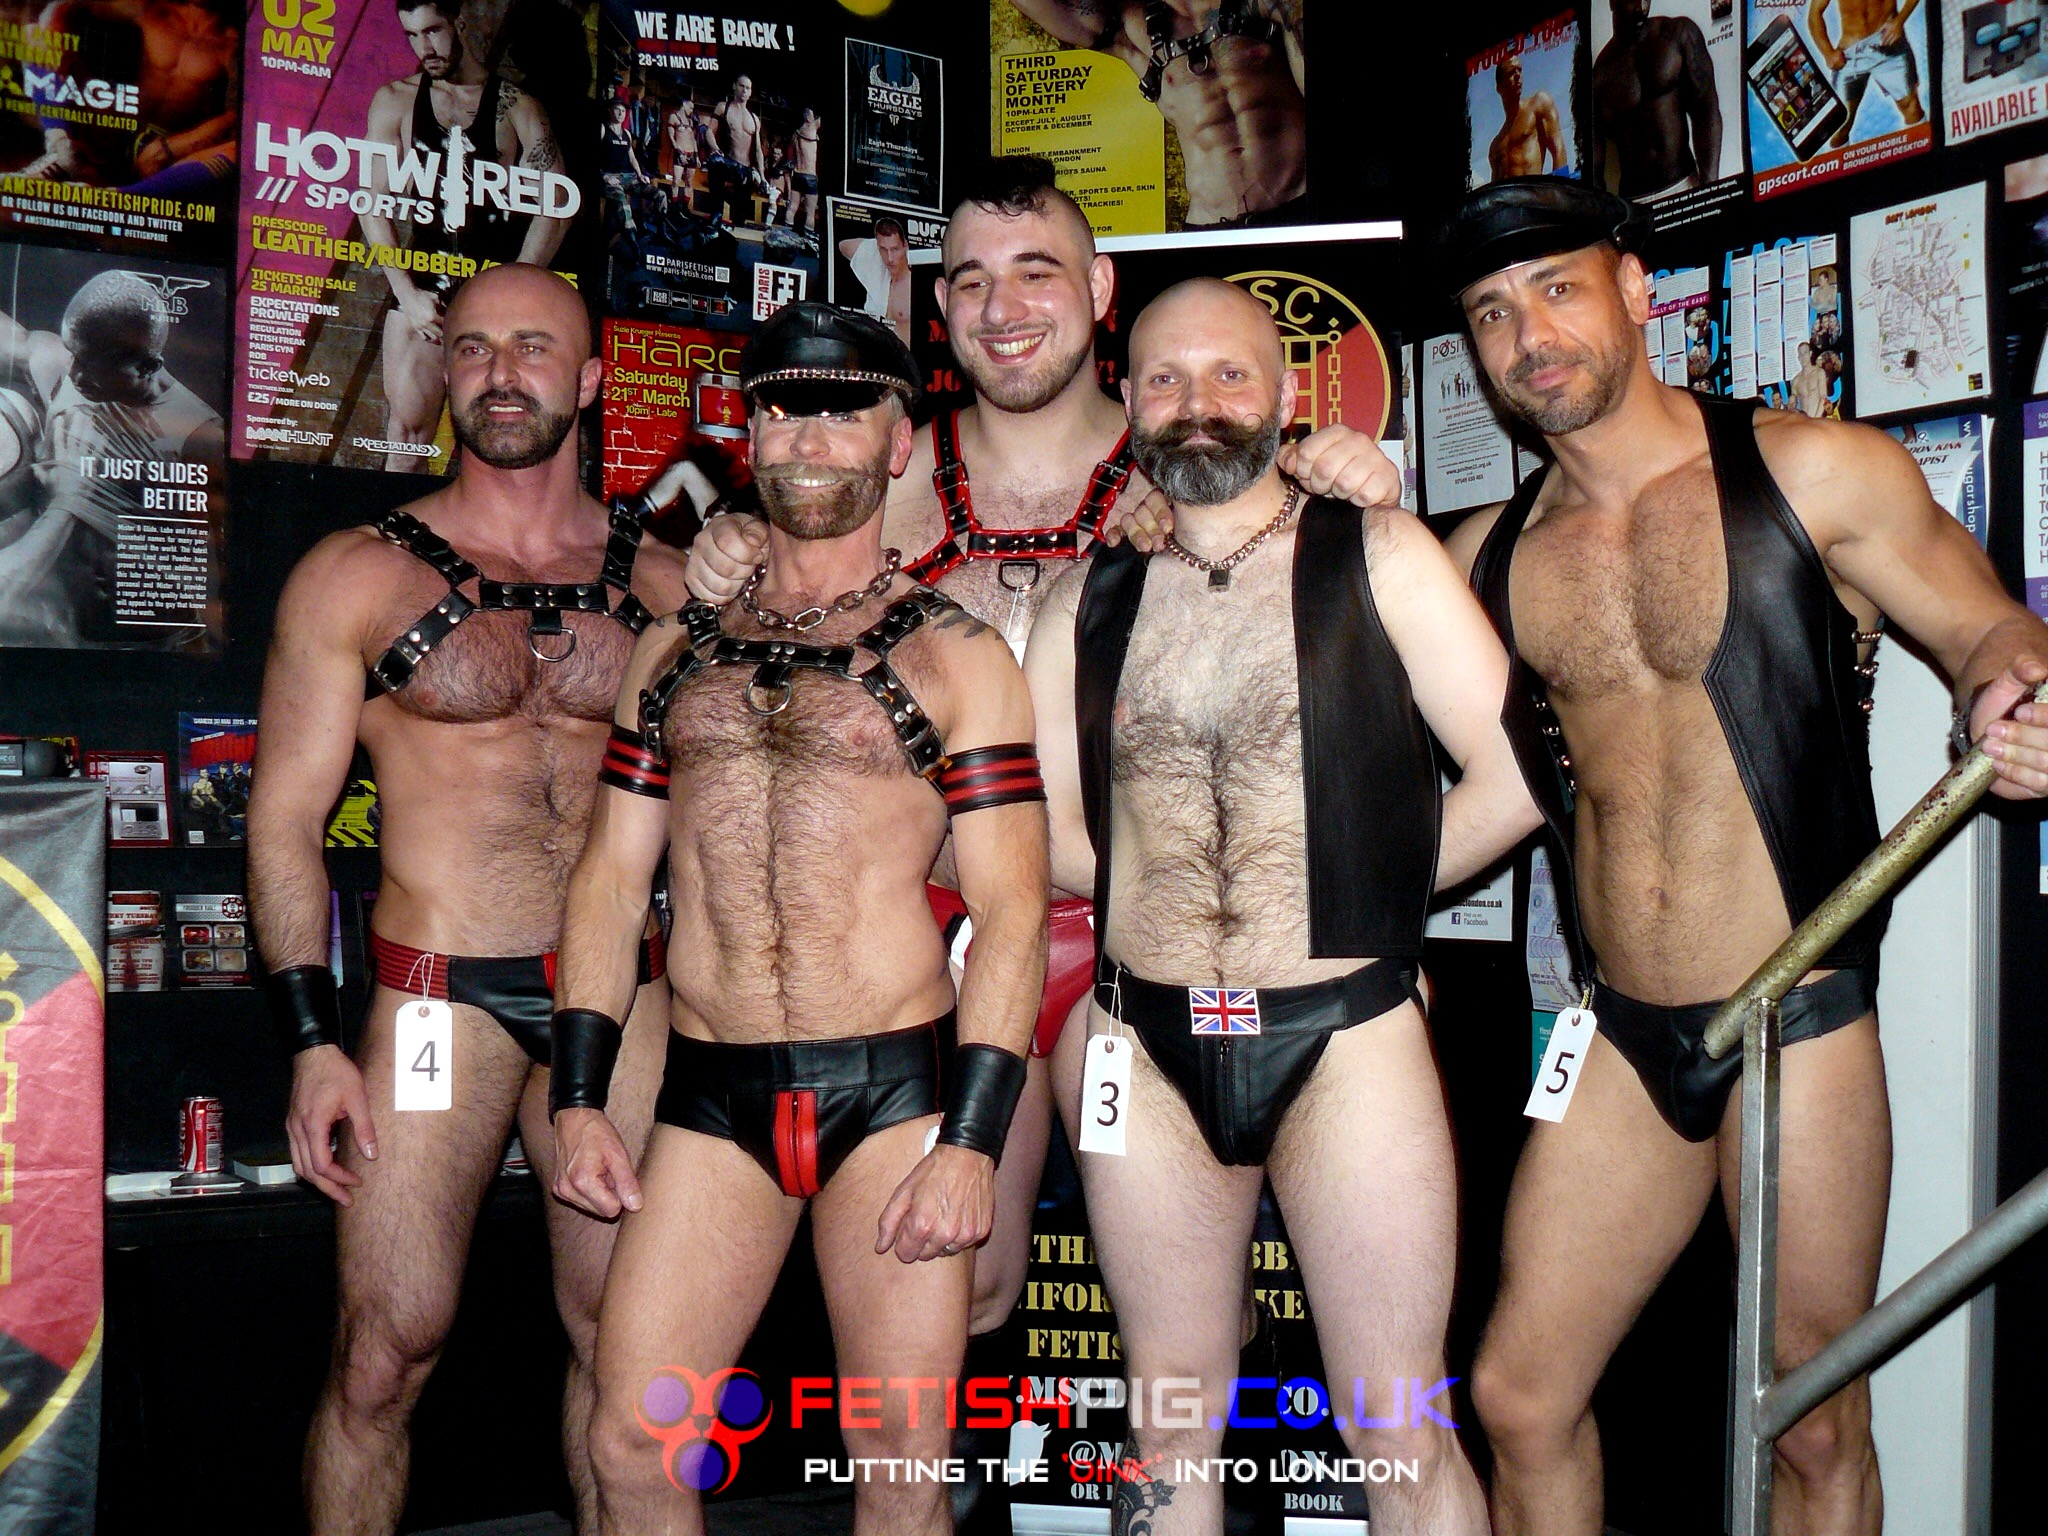 GALLERY: MR LEATHER 2015